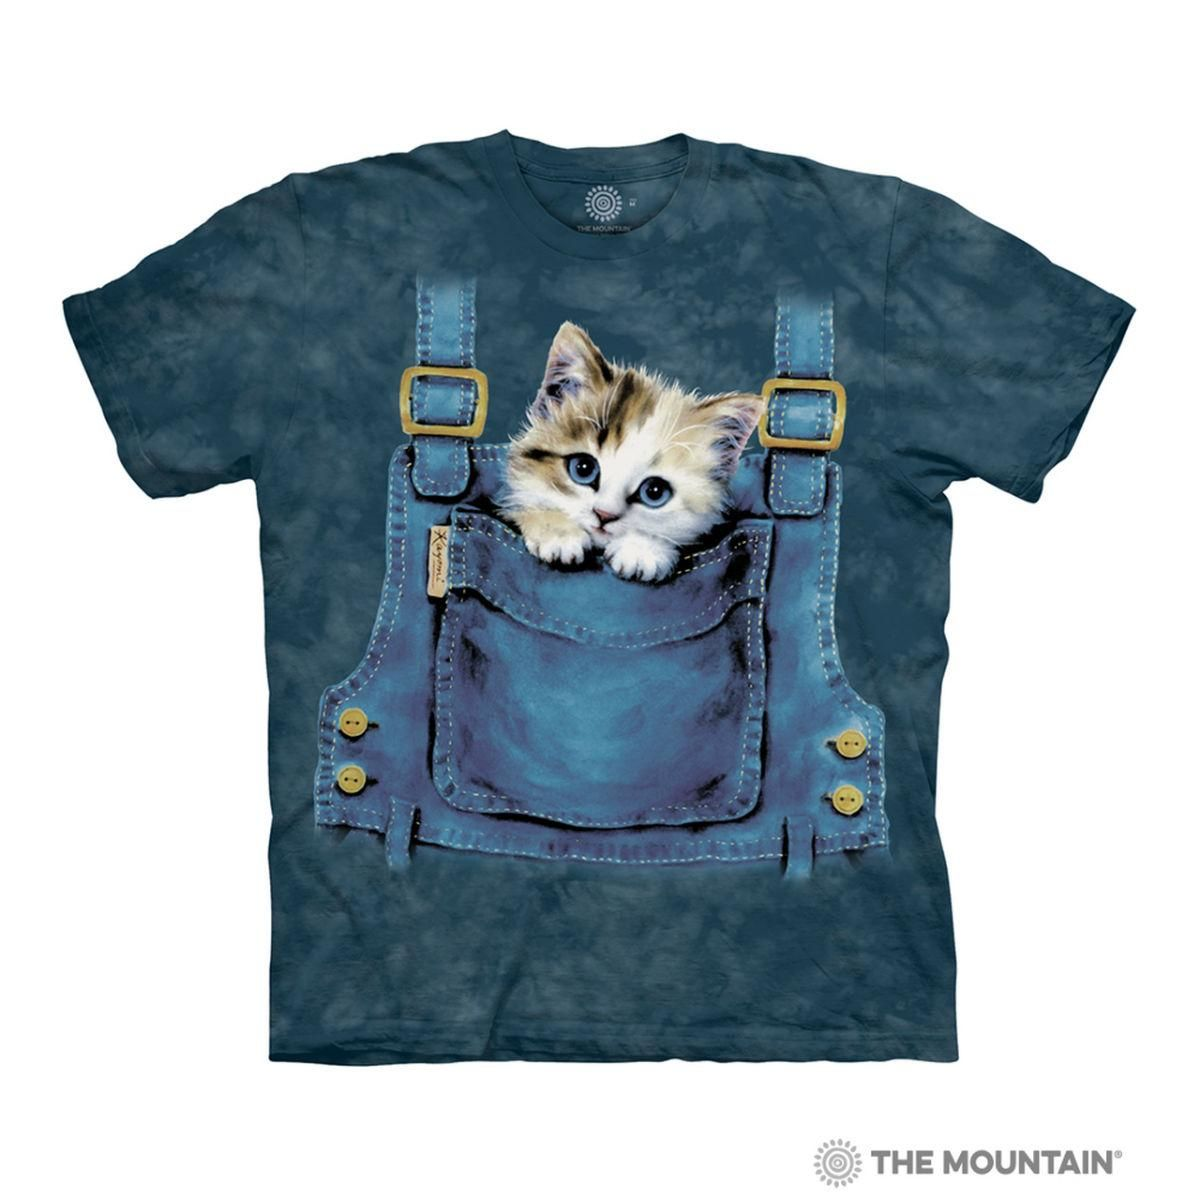 Kitty Overalls Human T Shirt By The Mountain In 2020 Cat Tshirt Cat Lovers Kittens Cutest